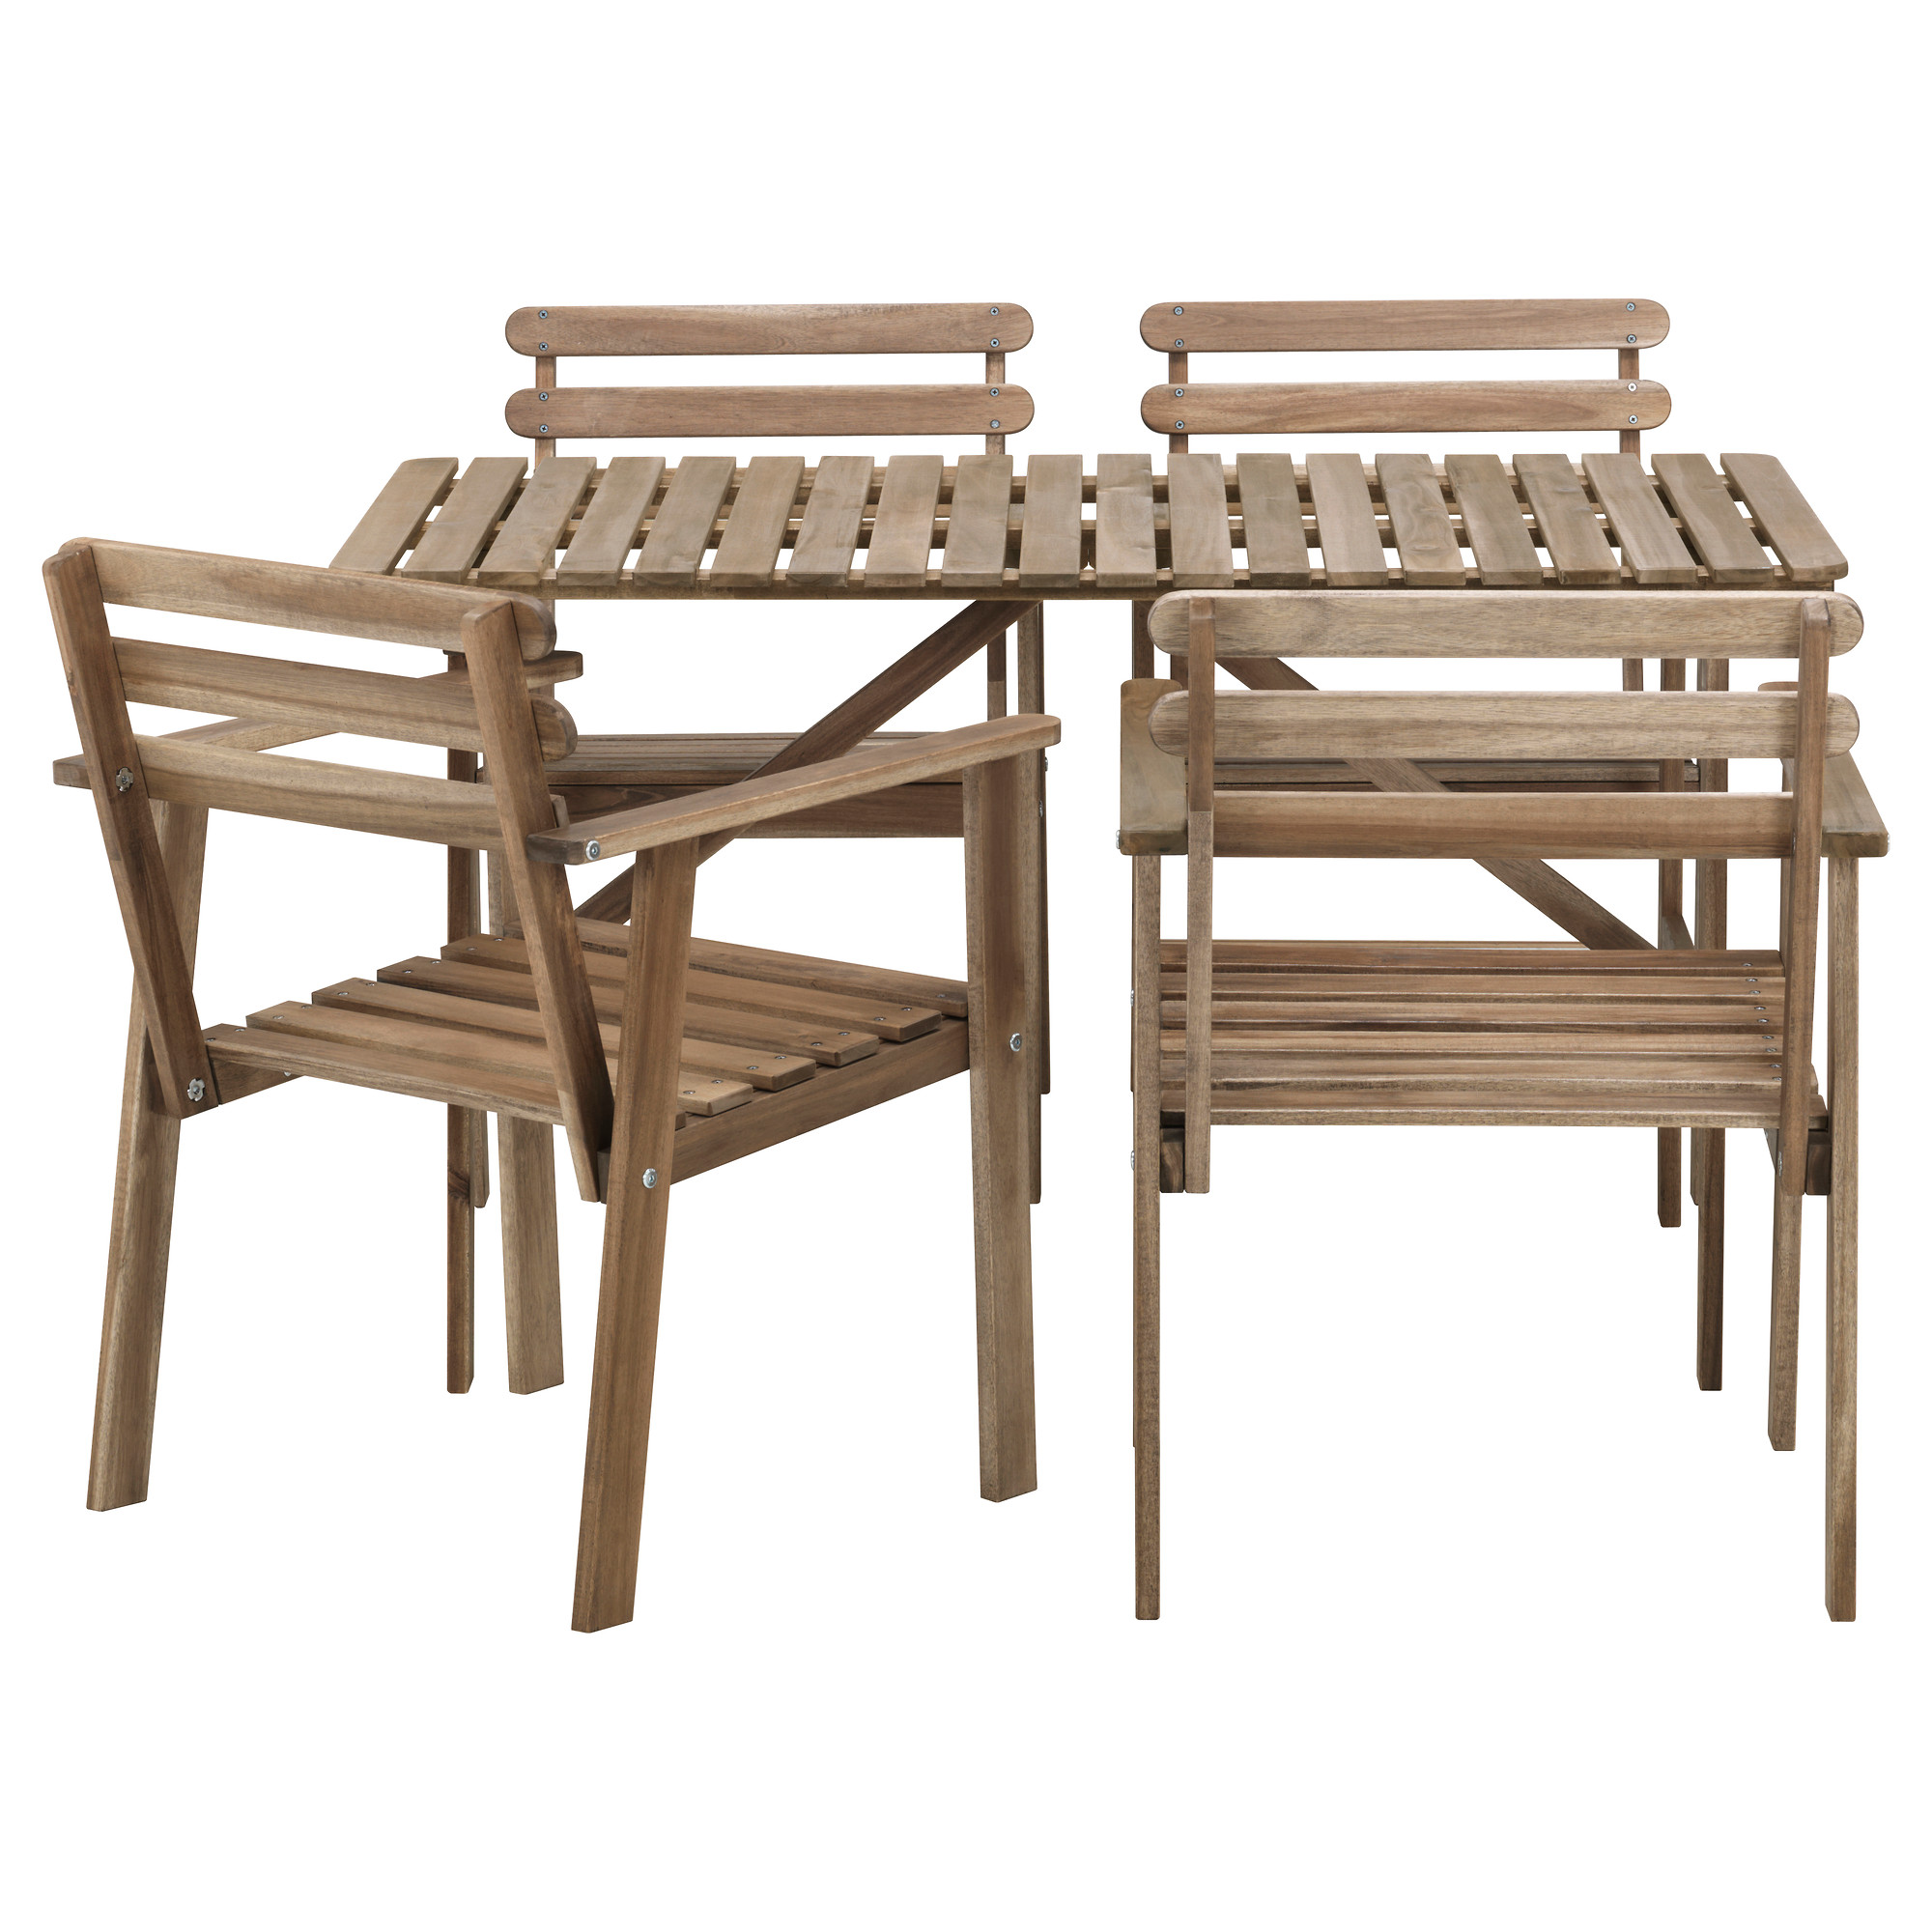 Beautiful outdoor bistro set ikea homesfeed - Voile de jardin ikea ...